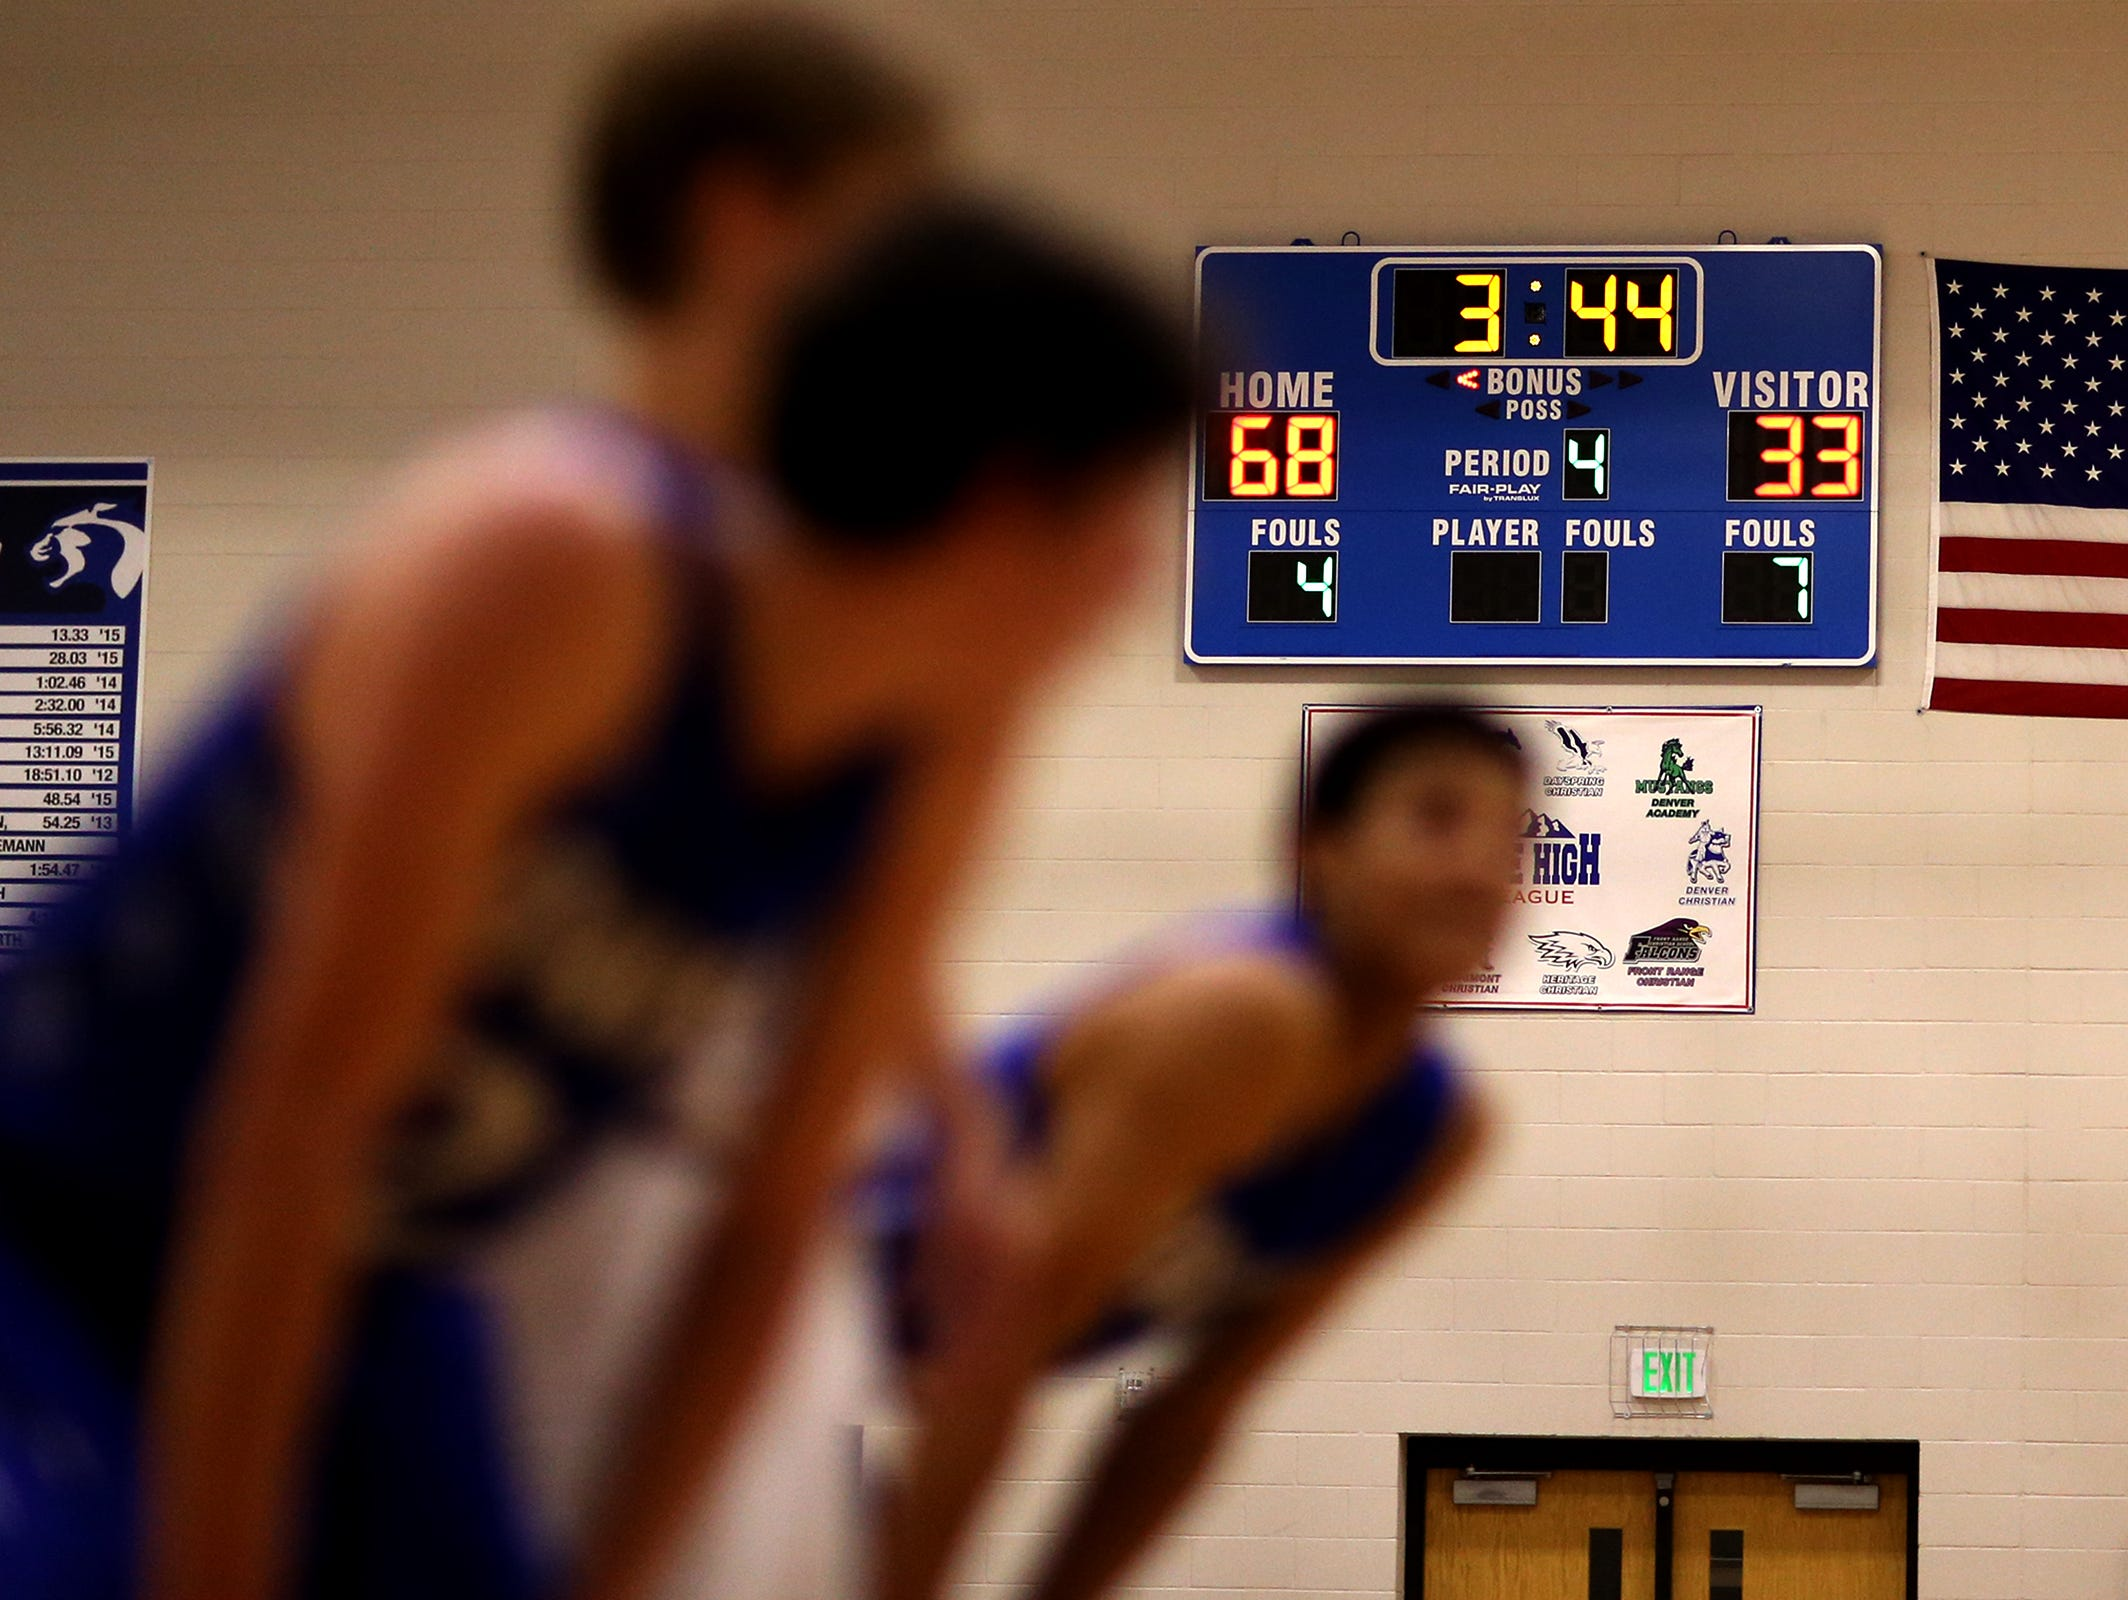 More than 700 high school basketball games in Colorado have been decided by 30 points or more this season.